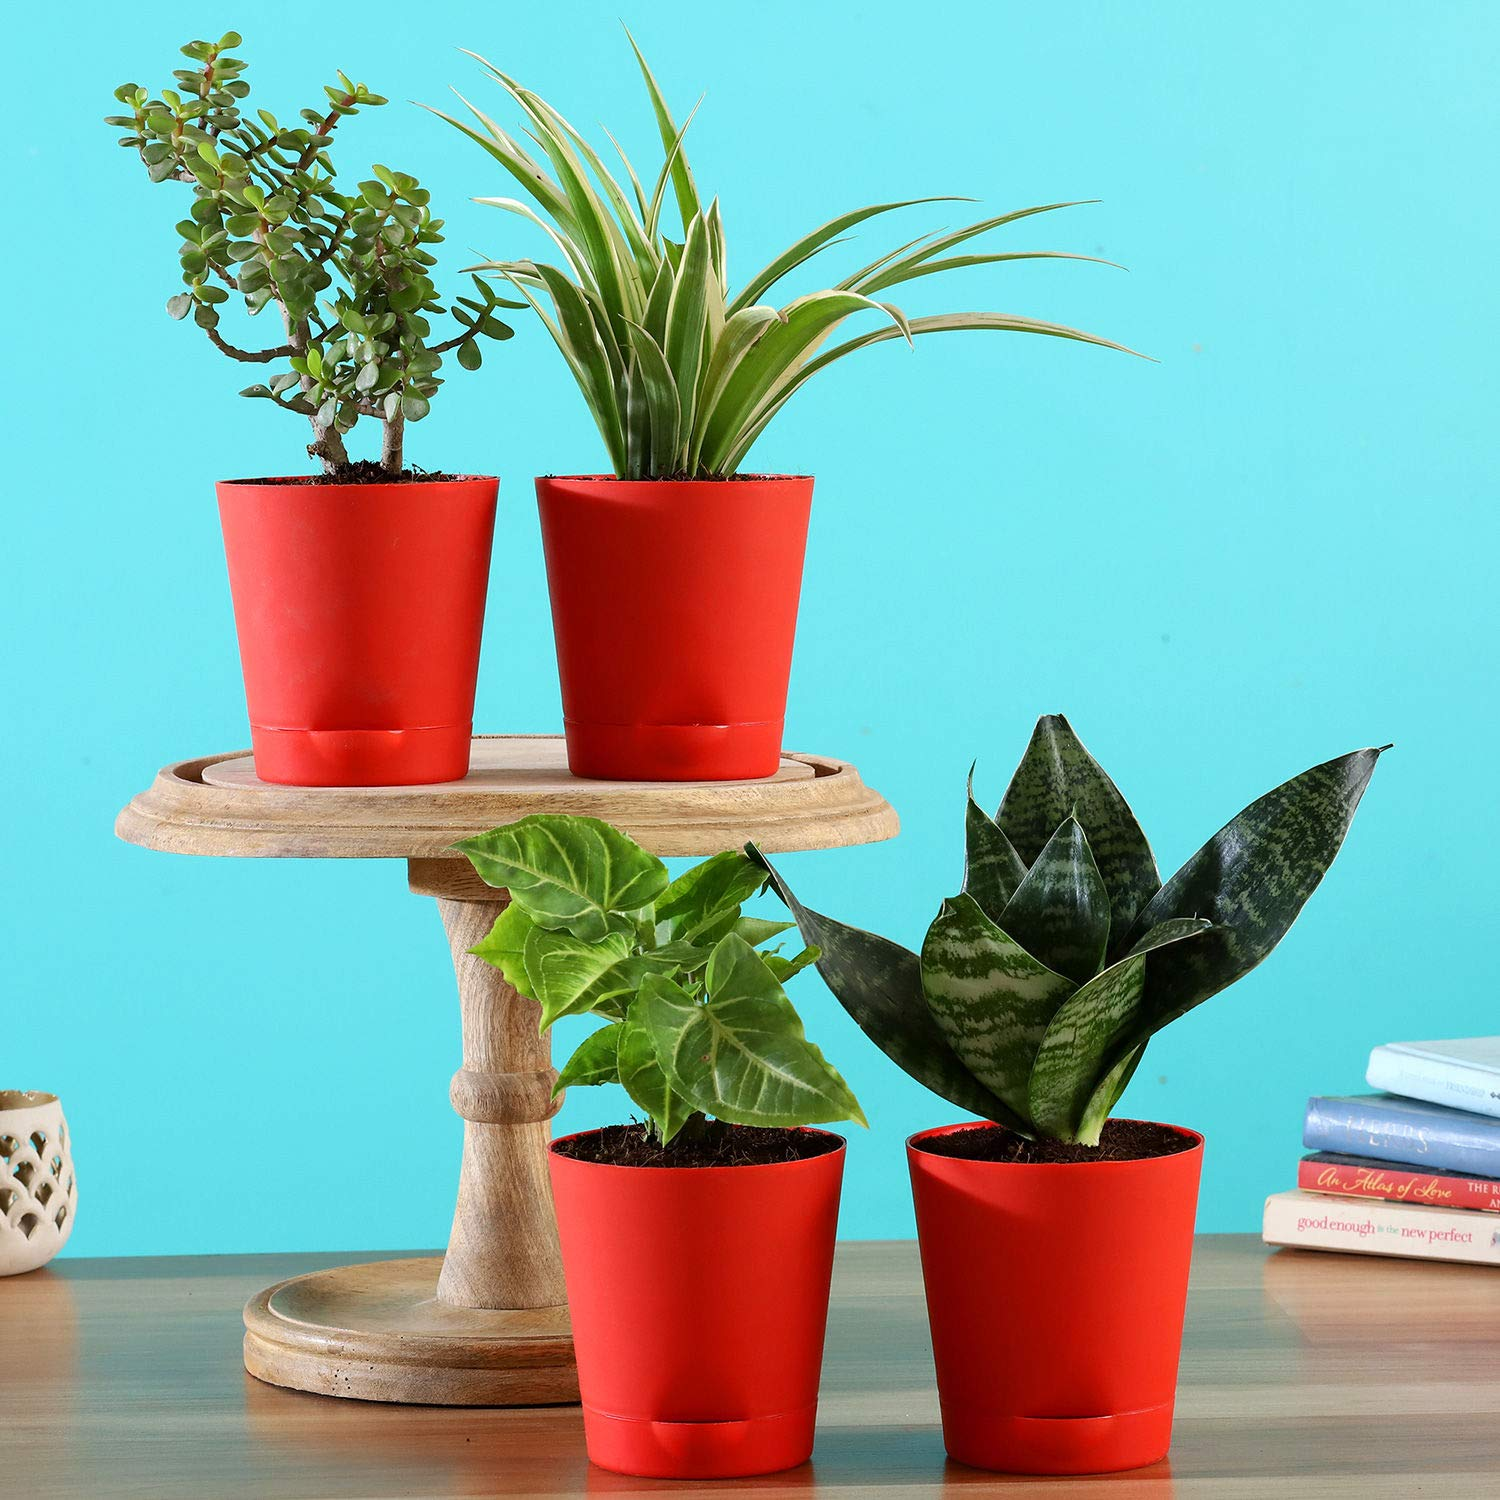 4 Air Purifying Plants In Red Self Watering Pots